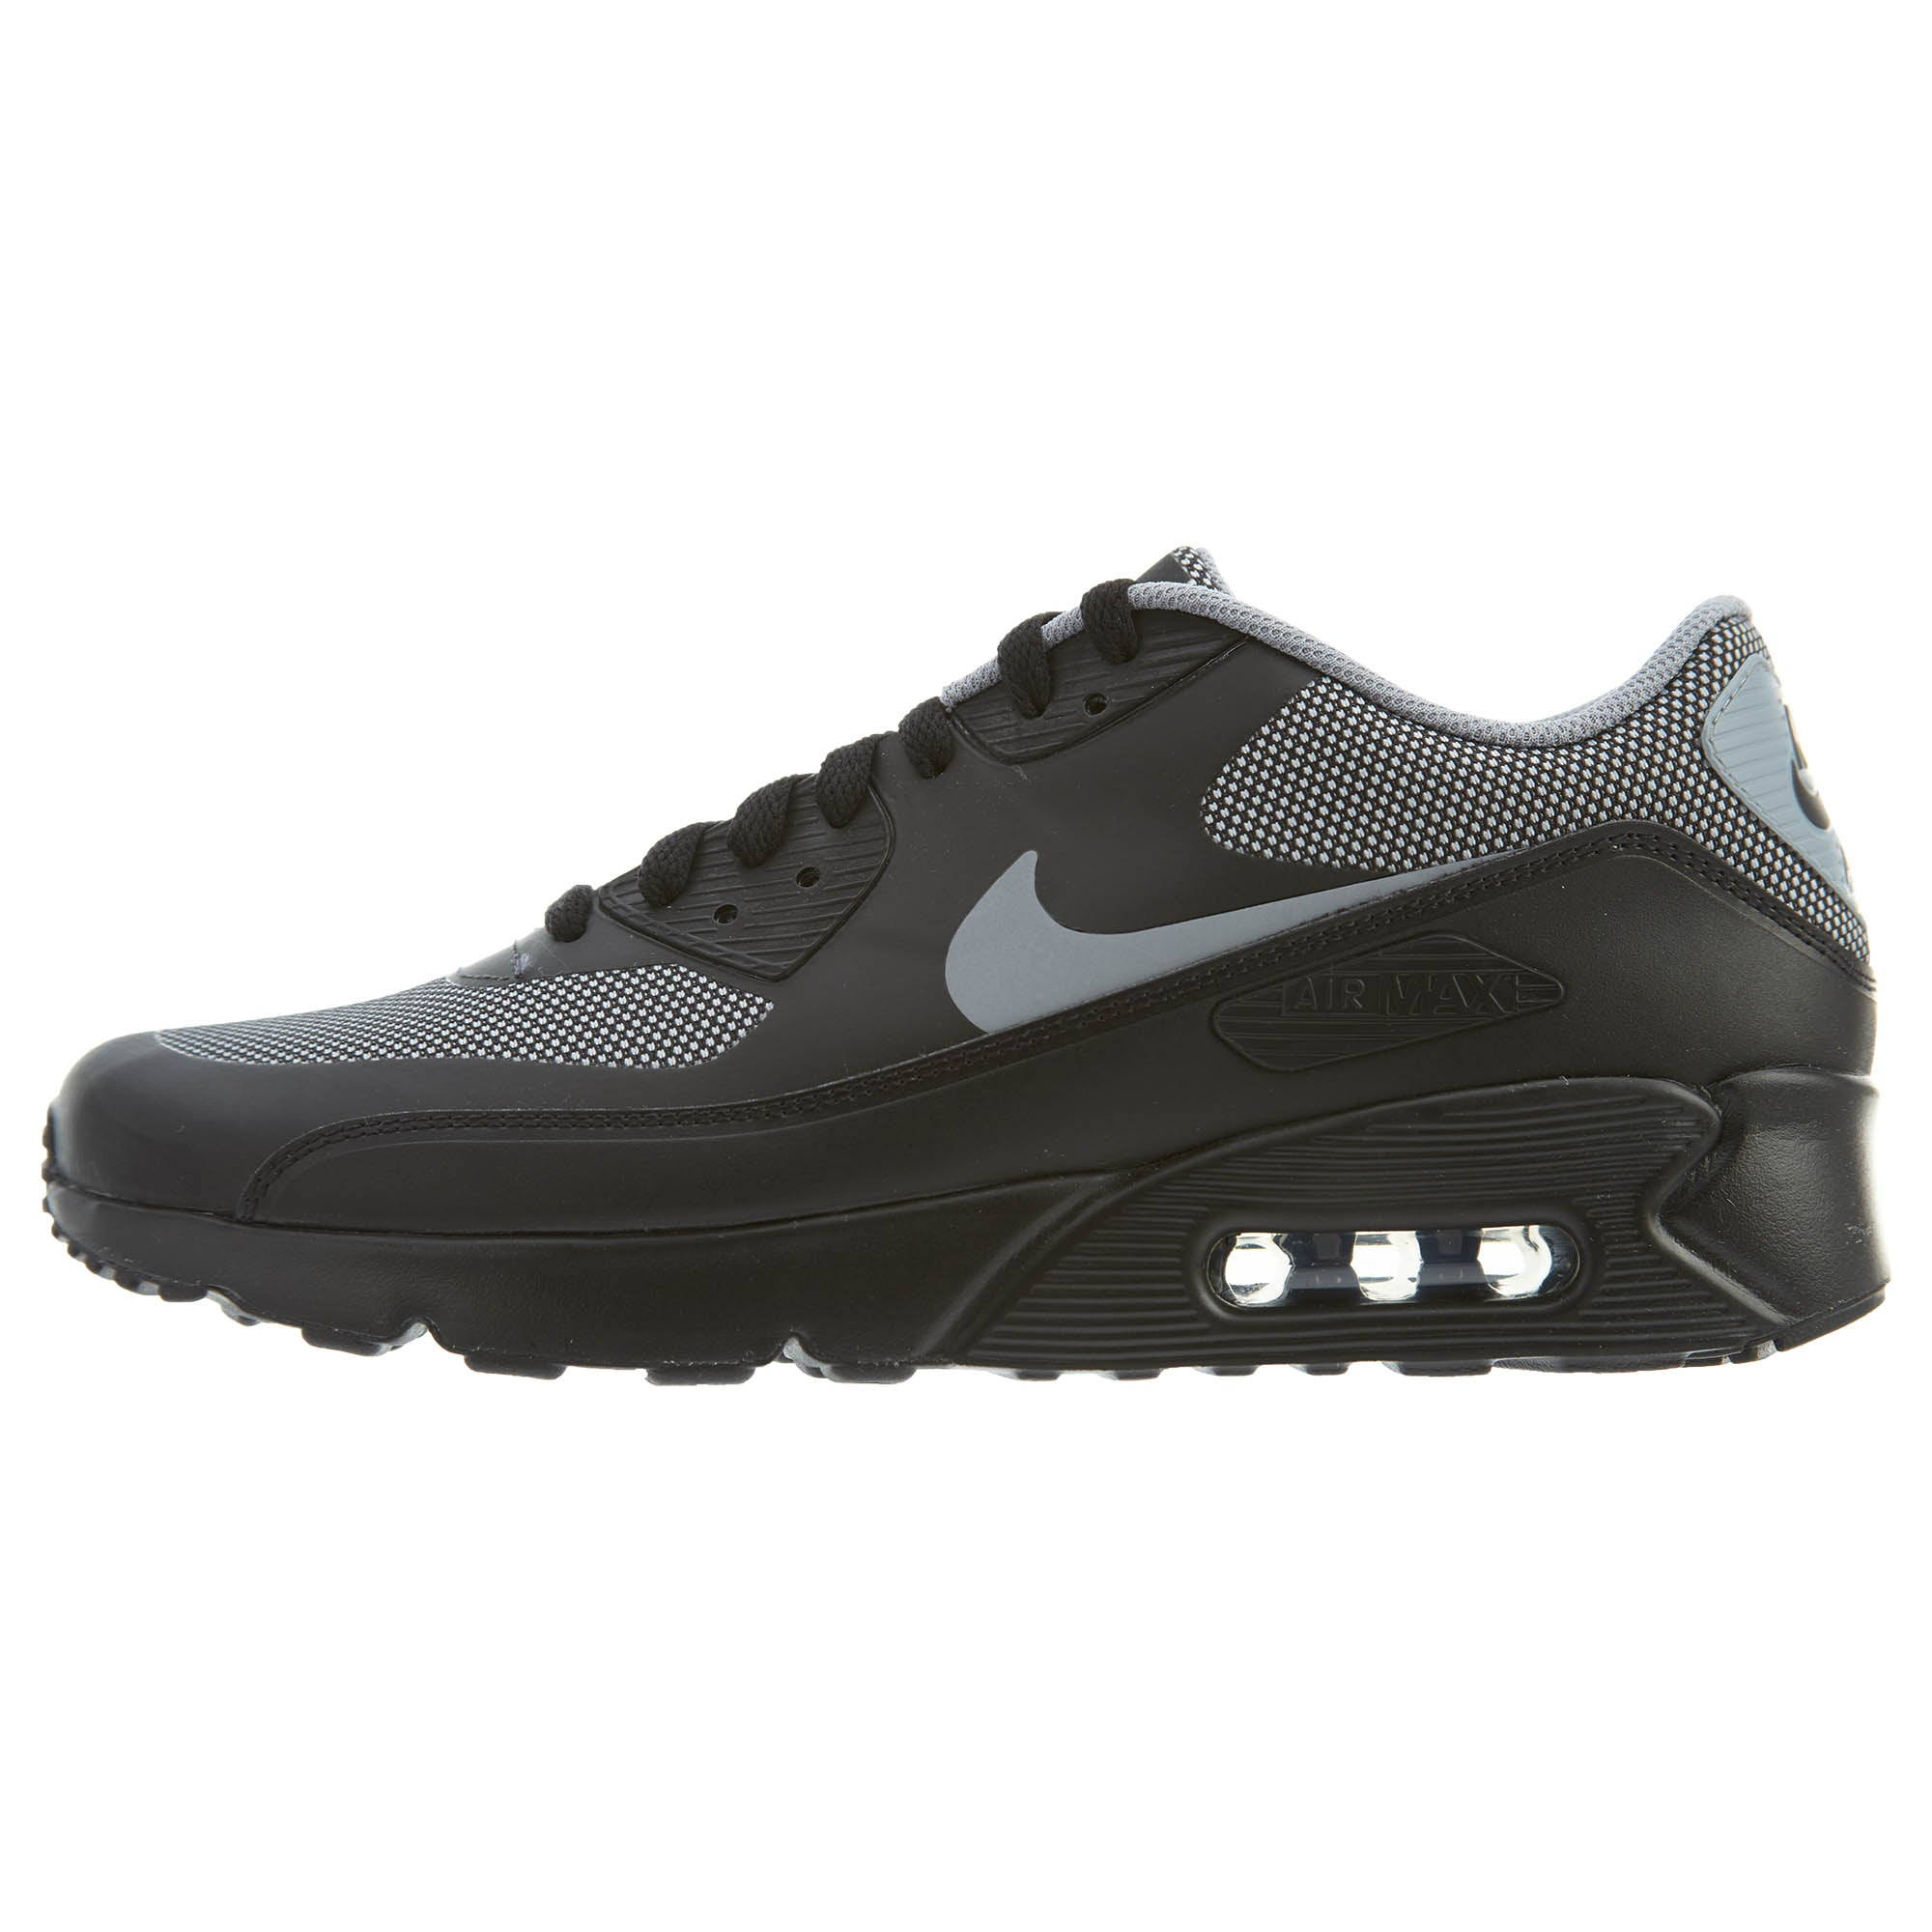 sale retailer 04168 24f00 Nike Air Max 90 Ultra 2.0 Essential Mens Style   875695-022 – Sneaker  Experts